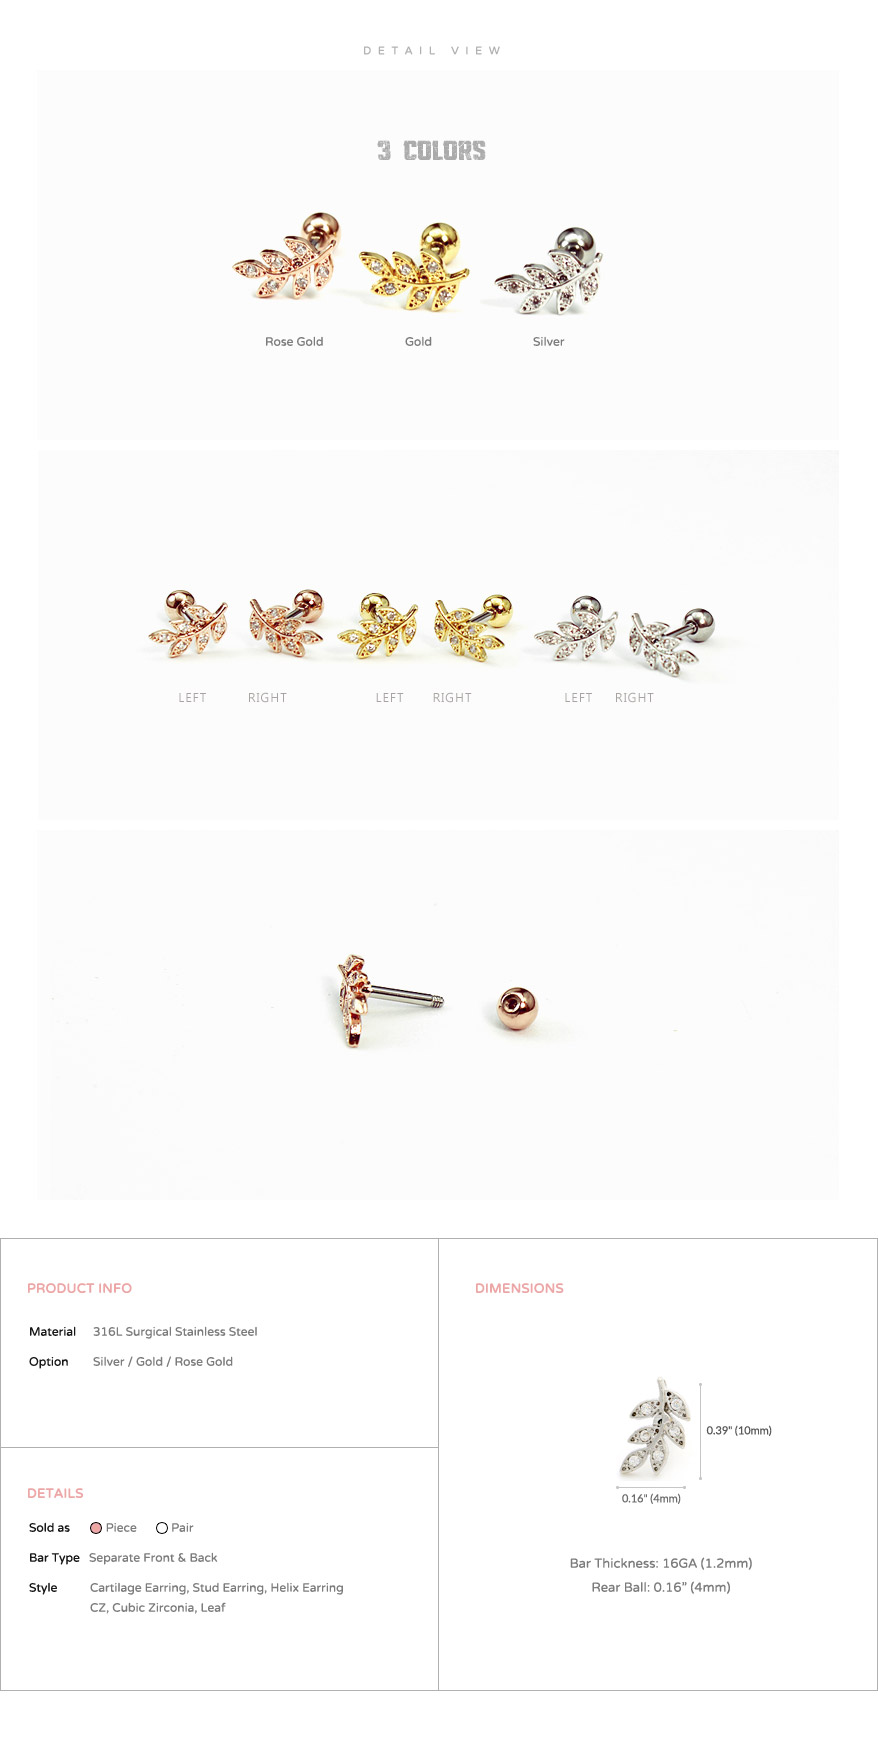 jewelry_earrings_stud_cartilage_piercing_16g_barbell_316l_cz_helix_earring_tragus_5